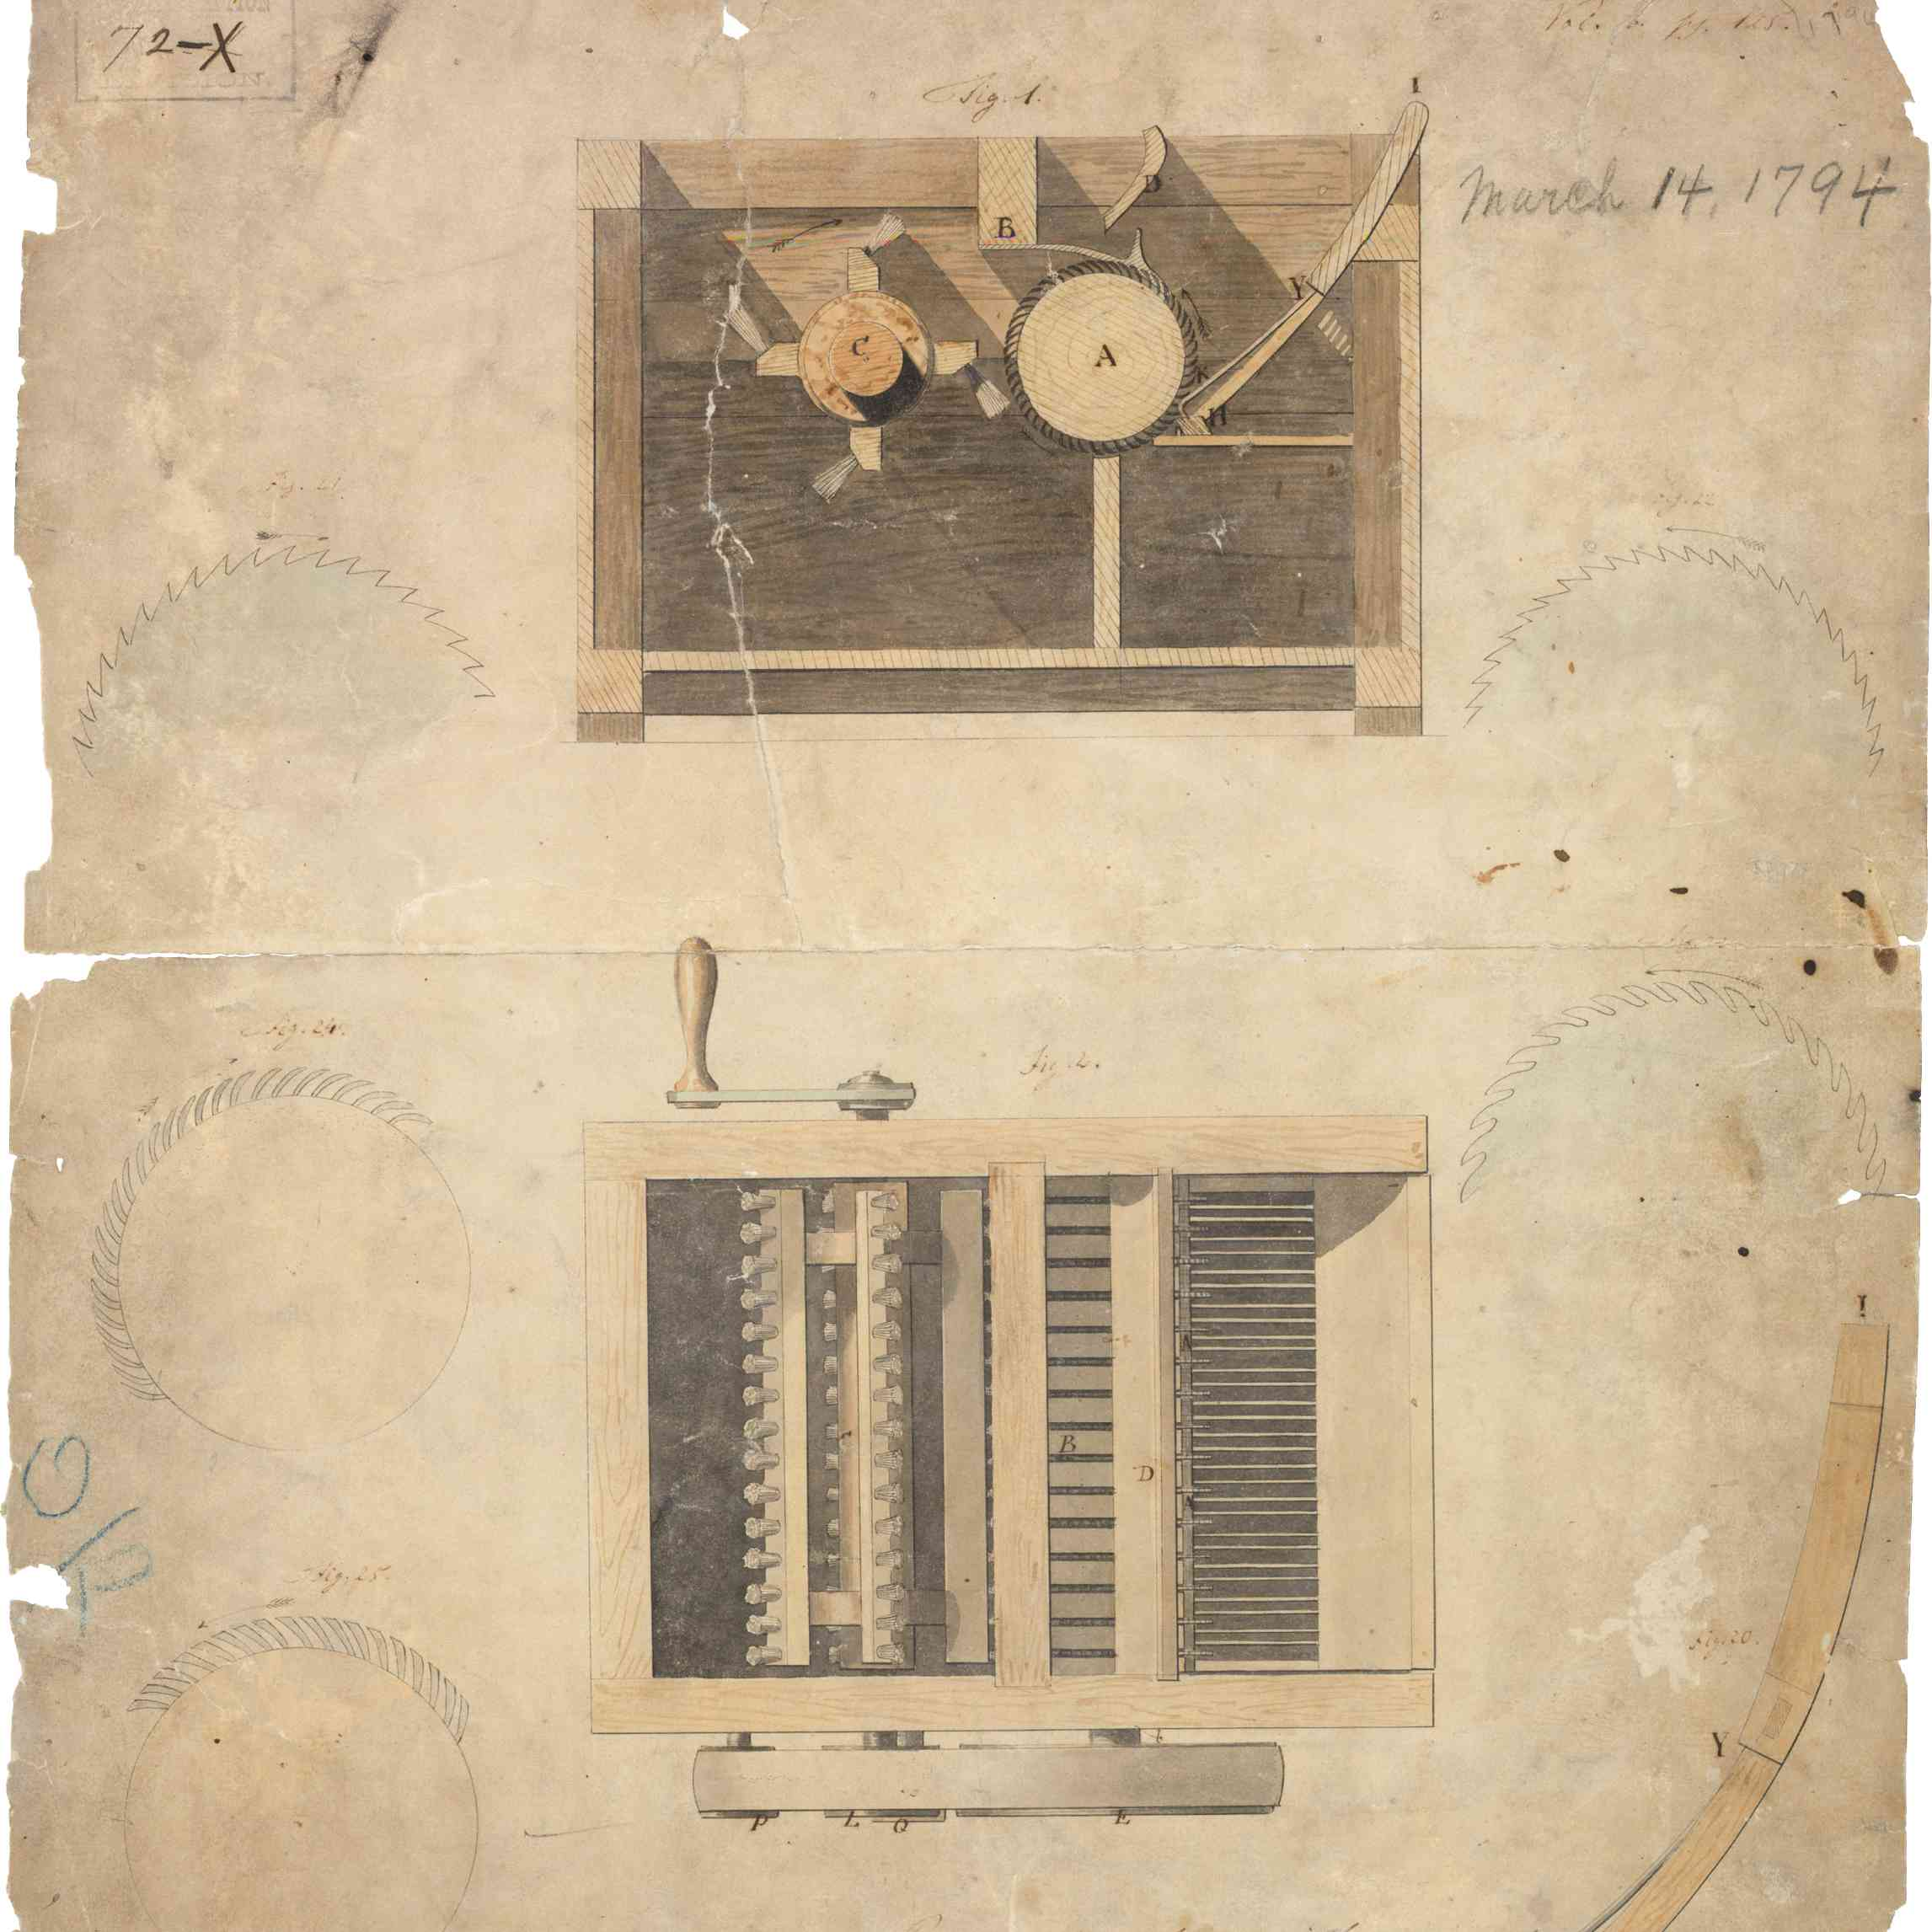 Eli Whitney's original patent for the cotton gin, dated March 14, 1794.